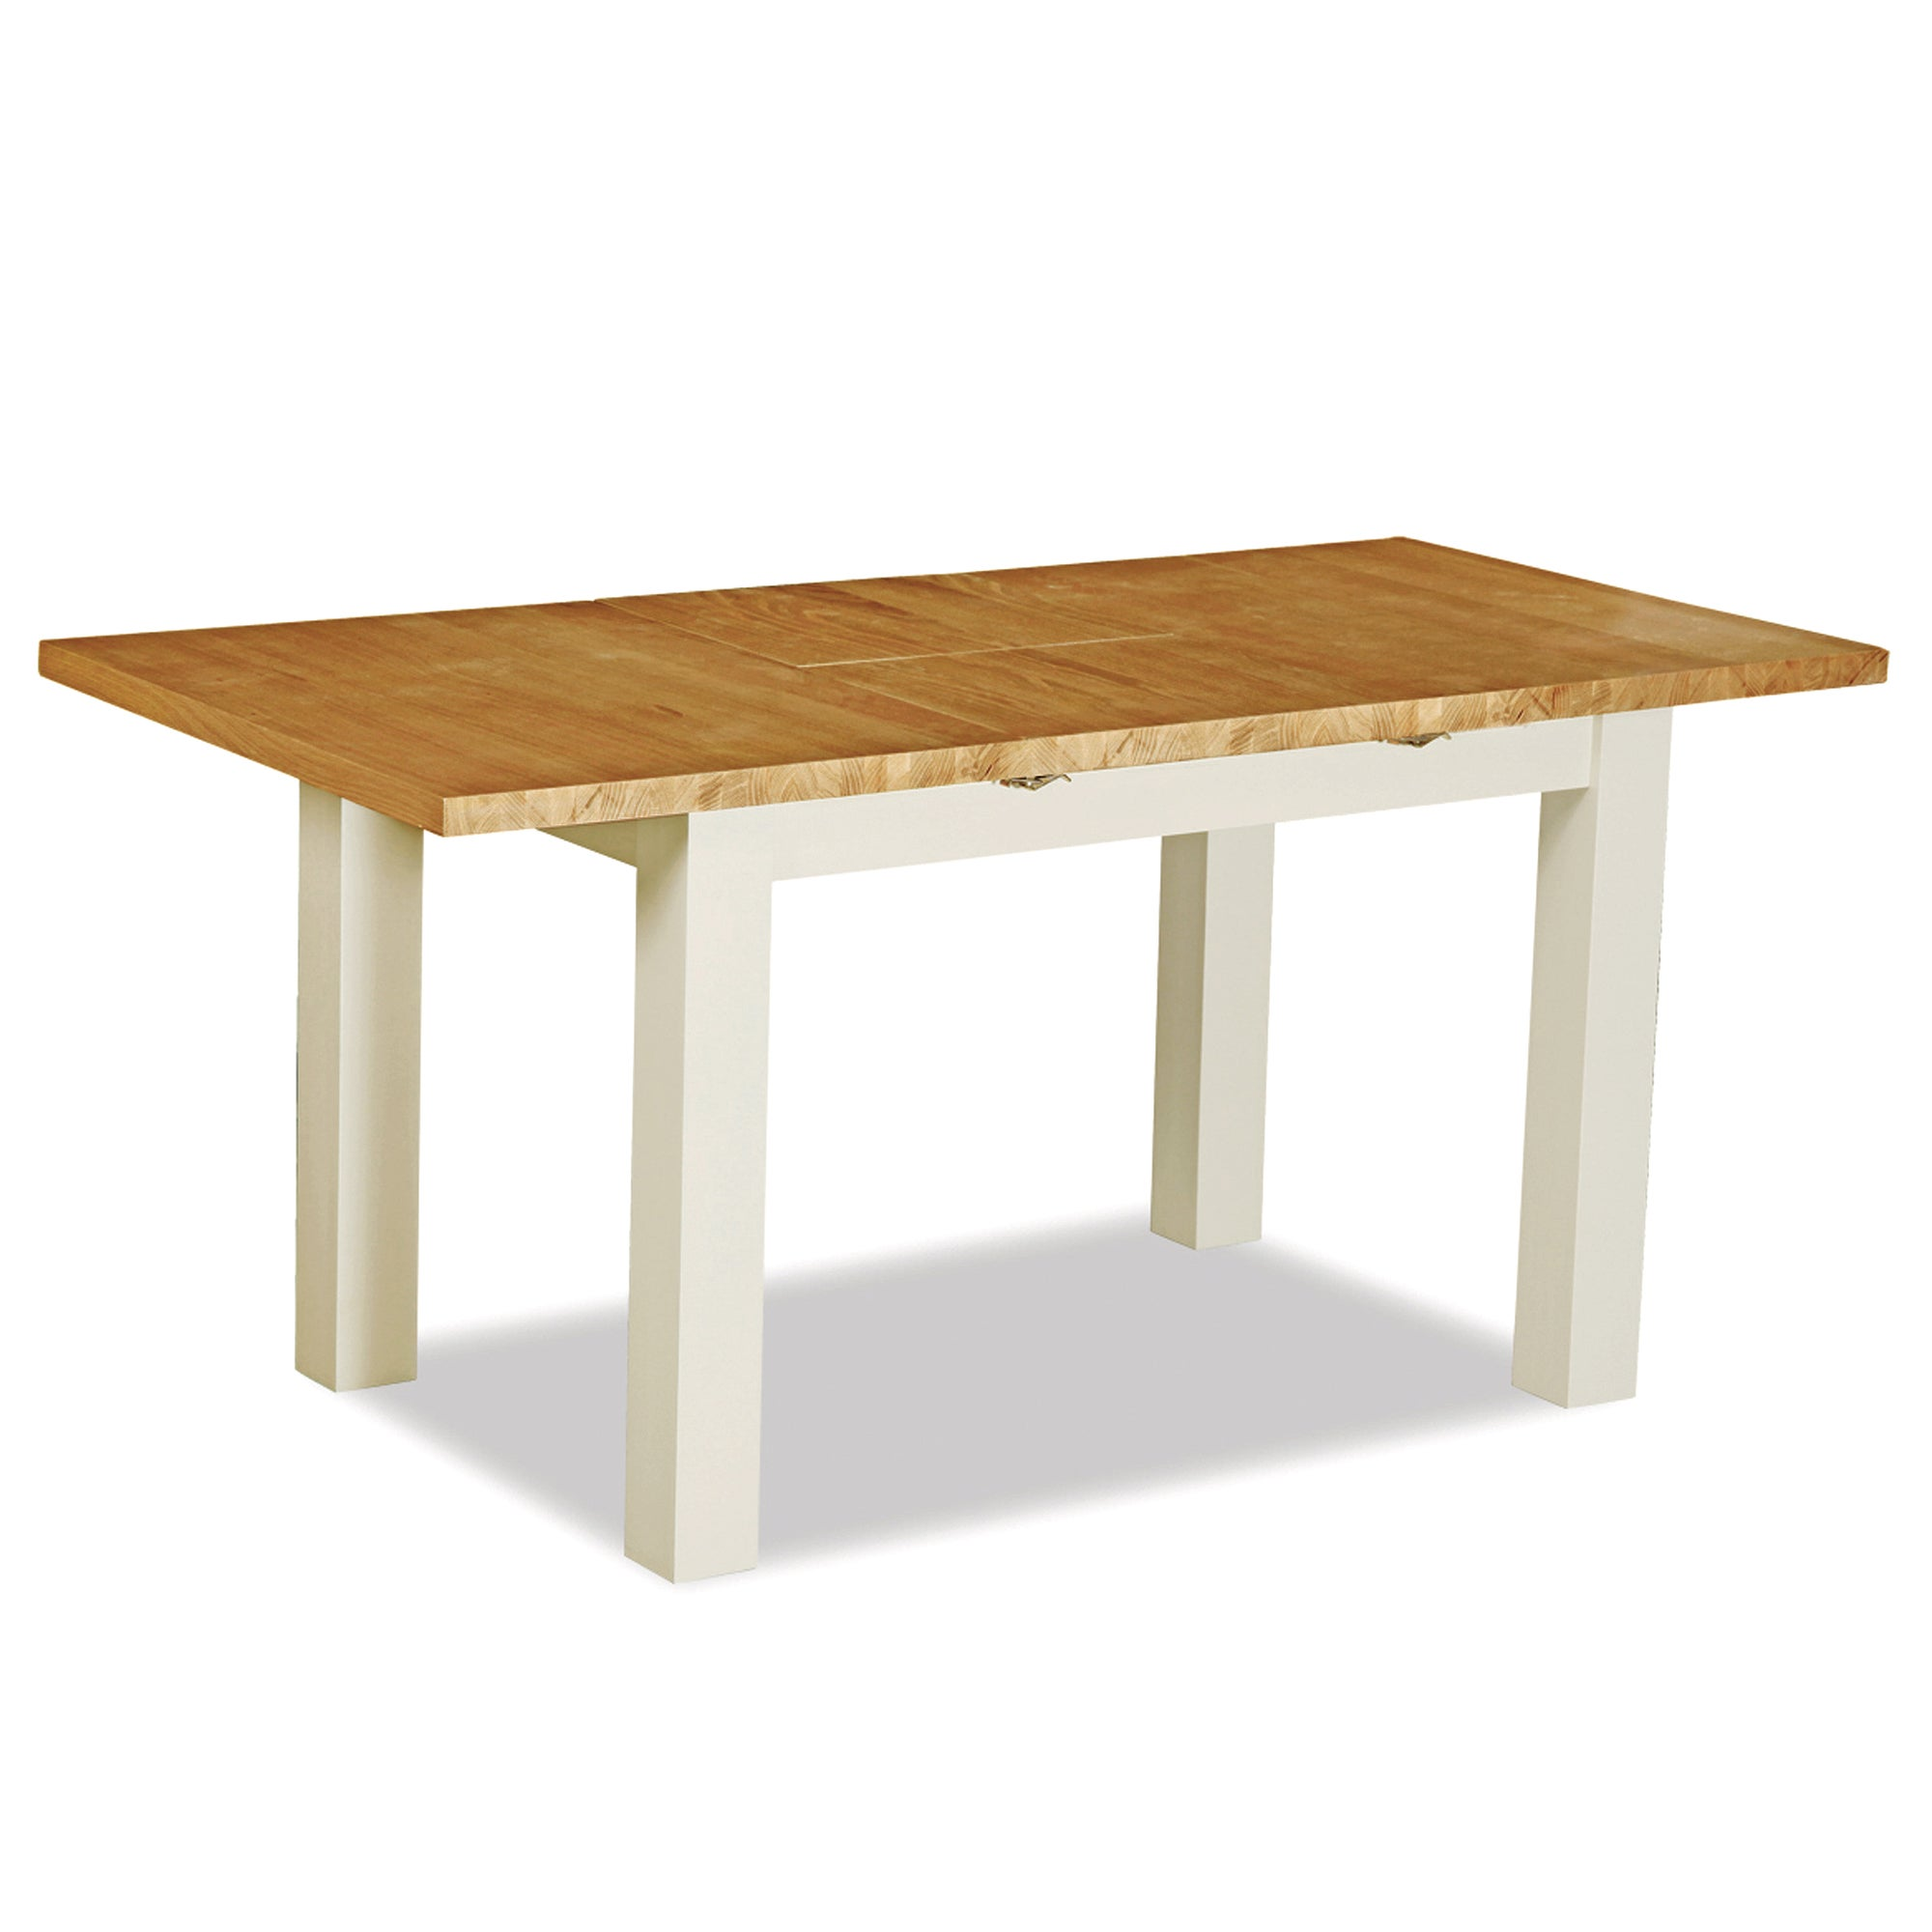 Truro Oak Extending Dining Table